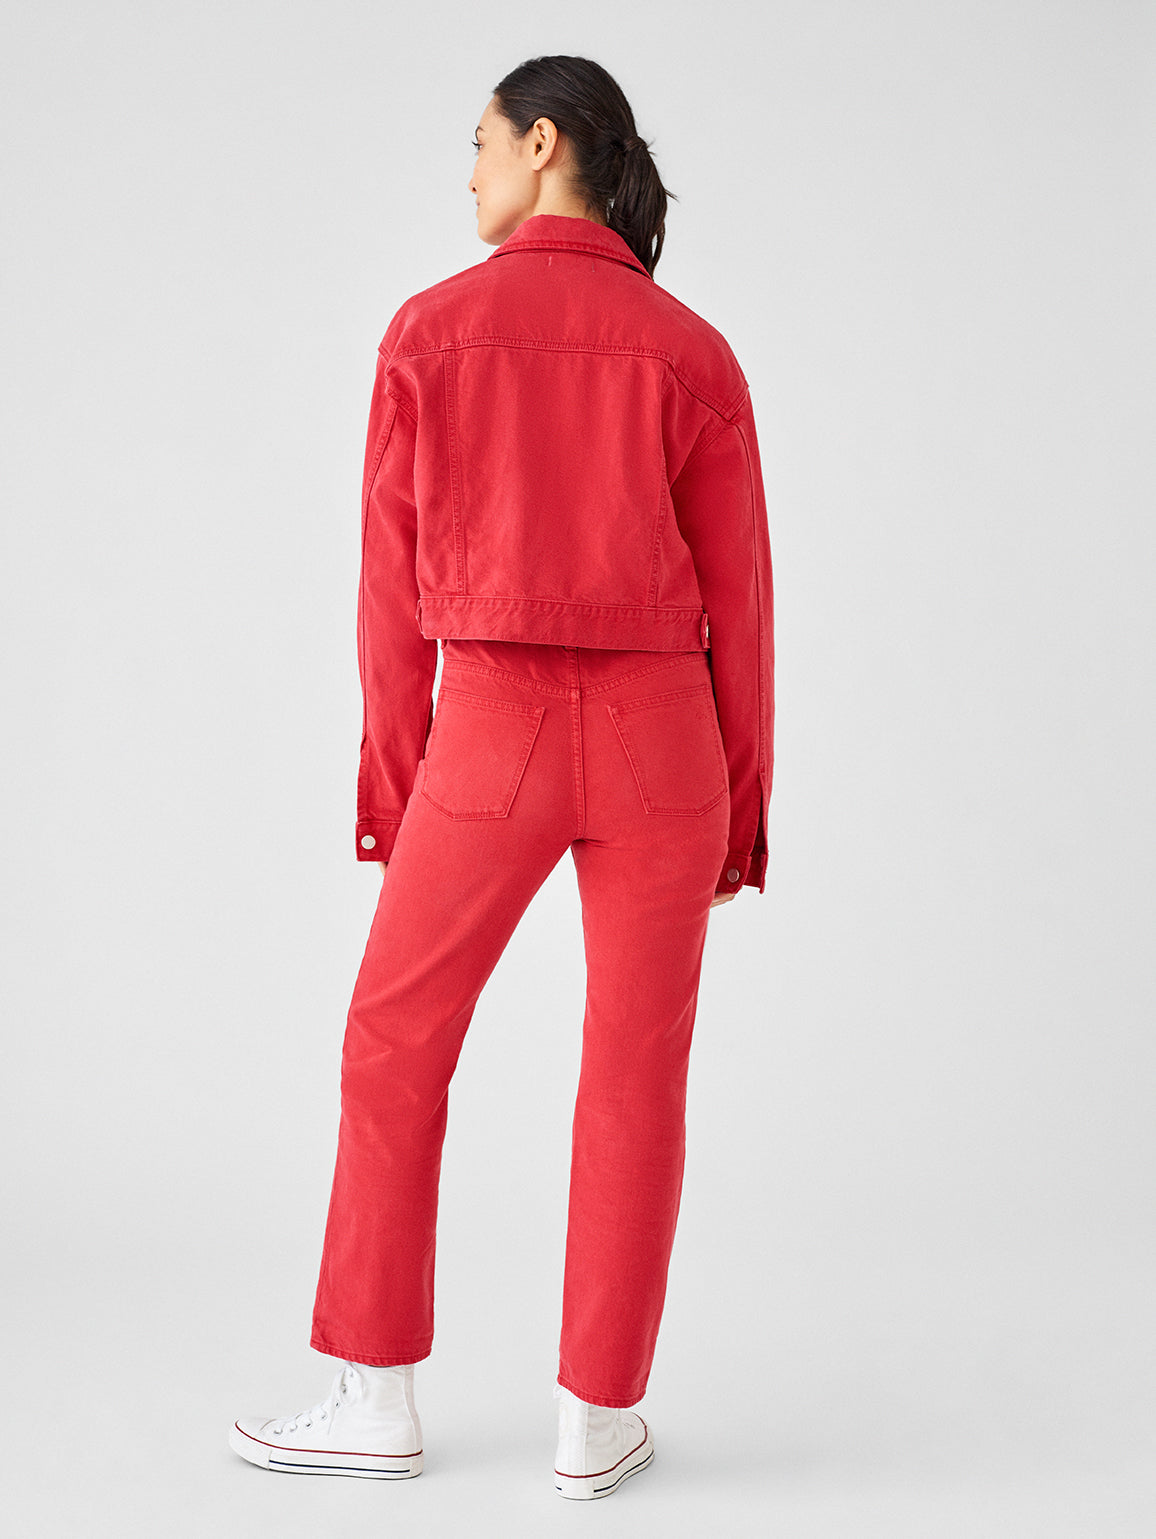 Women Jacket - Annie Cropped Oversized Jacket | Outlaw Red - DL1961